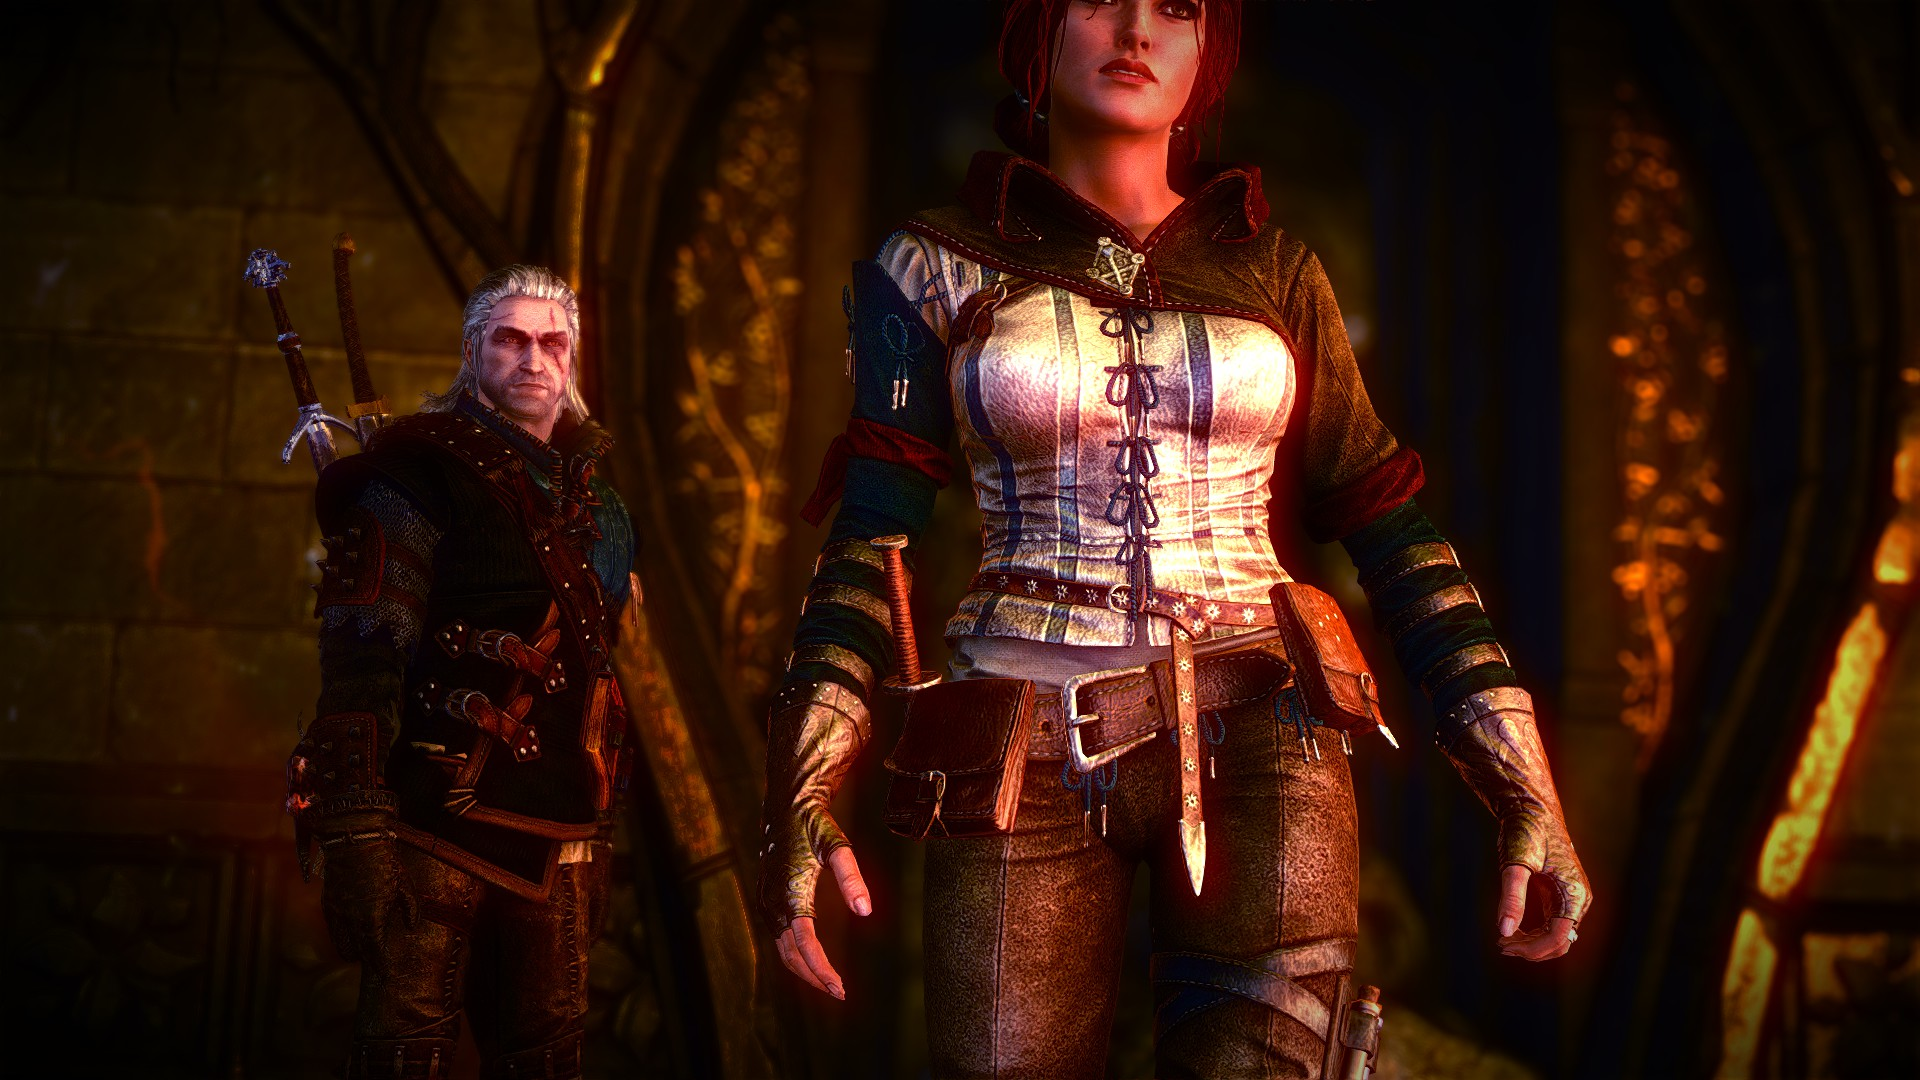 20190807190841_1.jpg - Witcher 2: Assassins of Kings, the Трисс